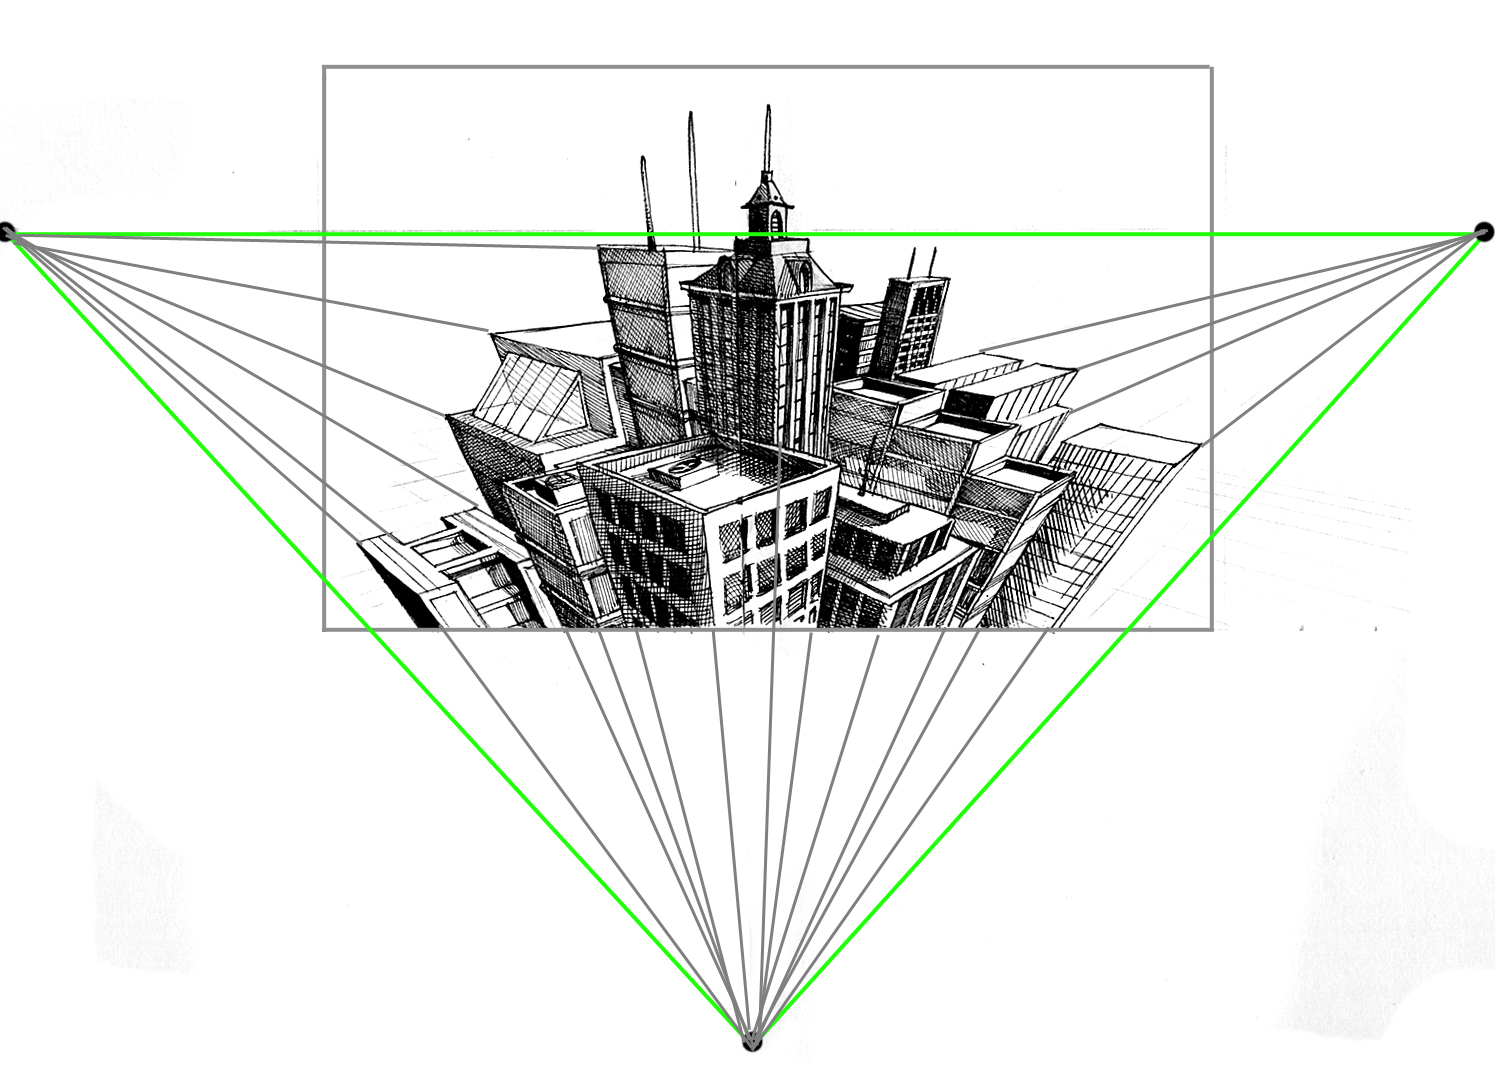 3 Point Perspective Diagram with Cityscape in Center